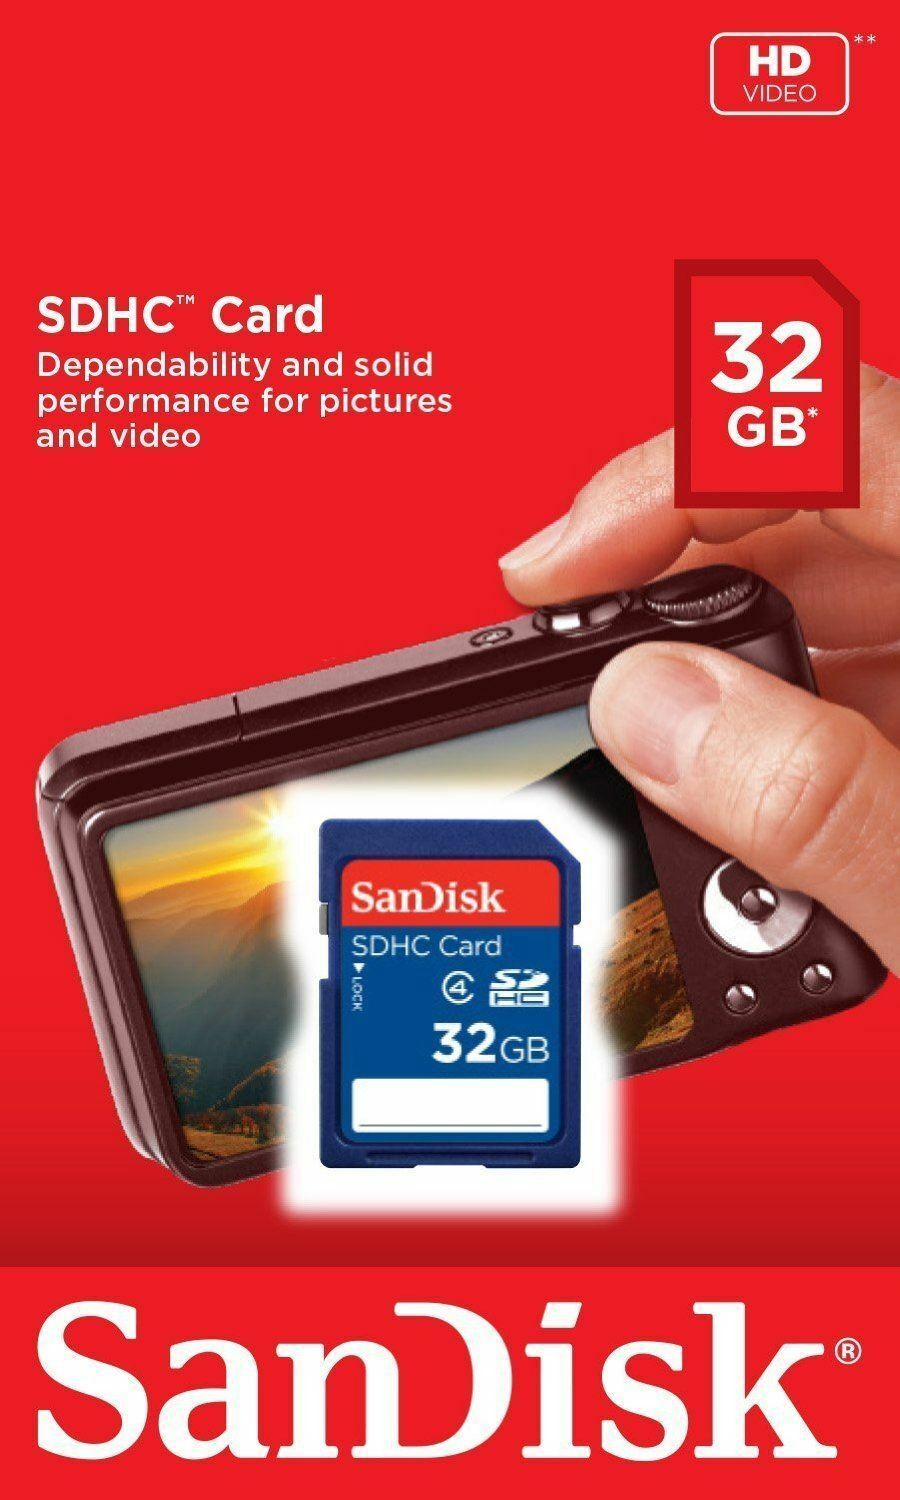 New SanDisk 32GB SD SDHC Class 4 Camera Flash Memory Card 32